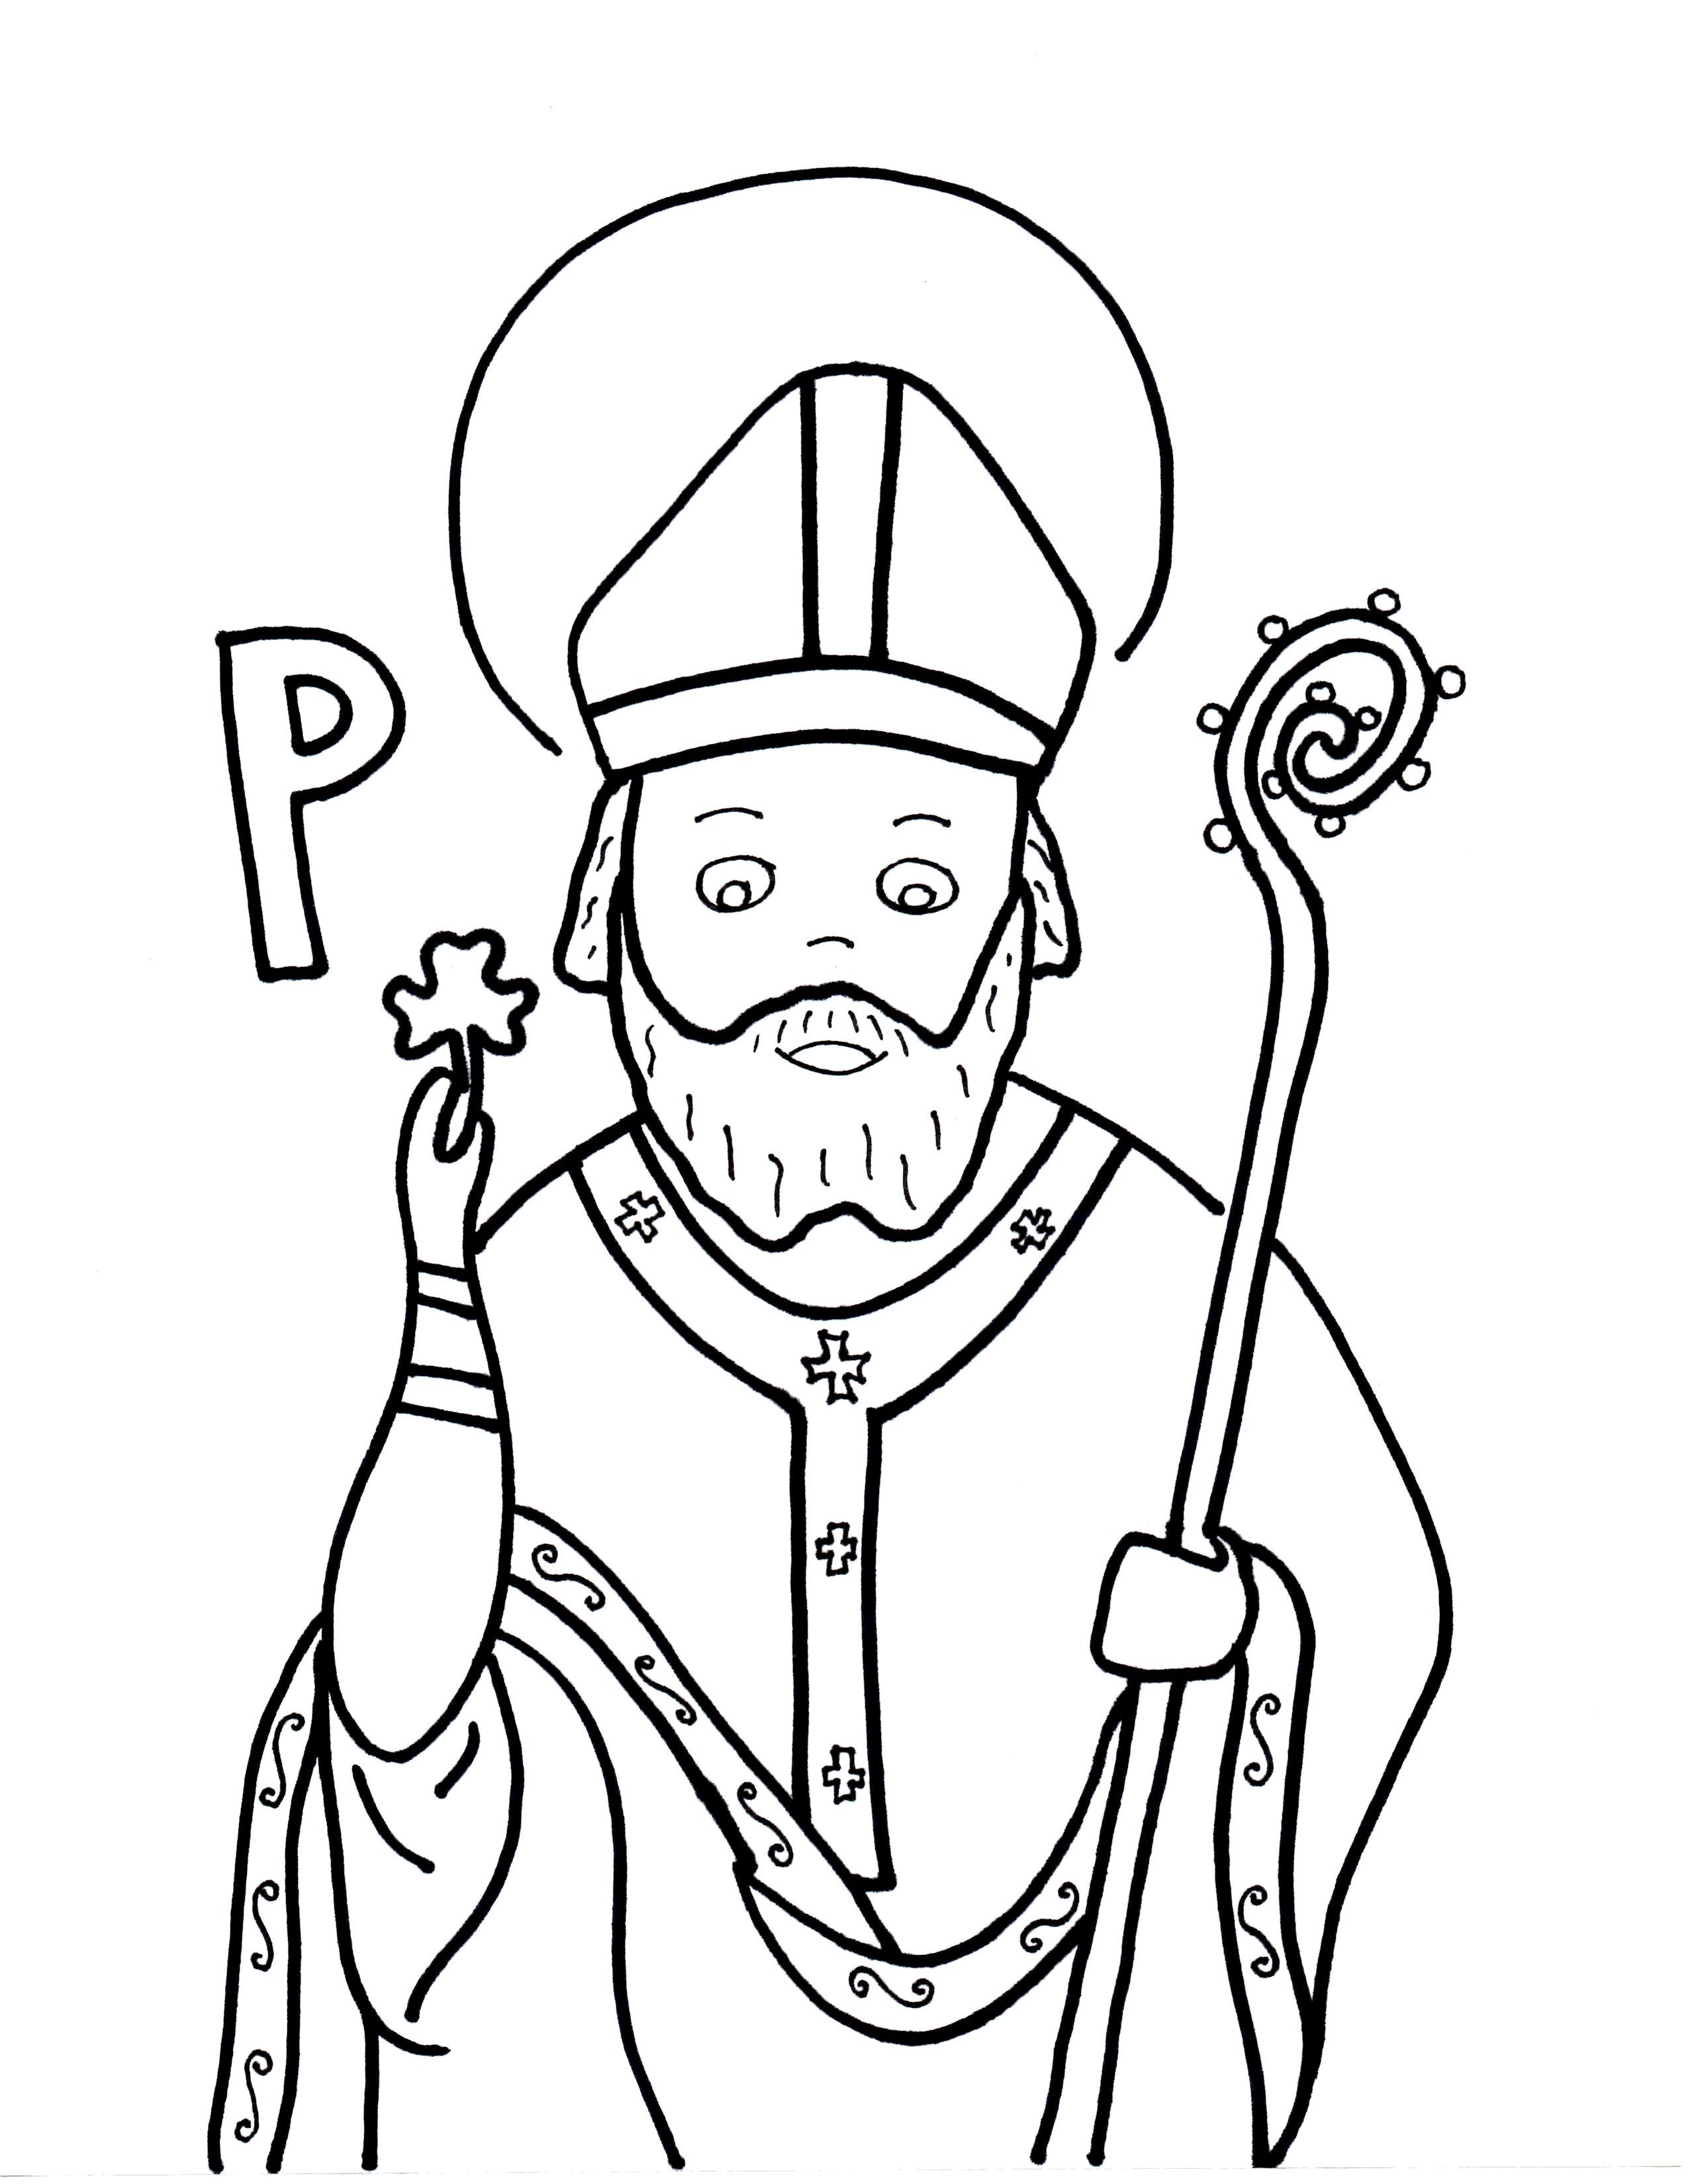 P Is For St Patrick Sunday School Coloring Pages Coloring Pages School Coloring Pages